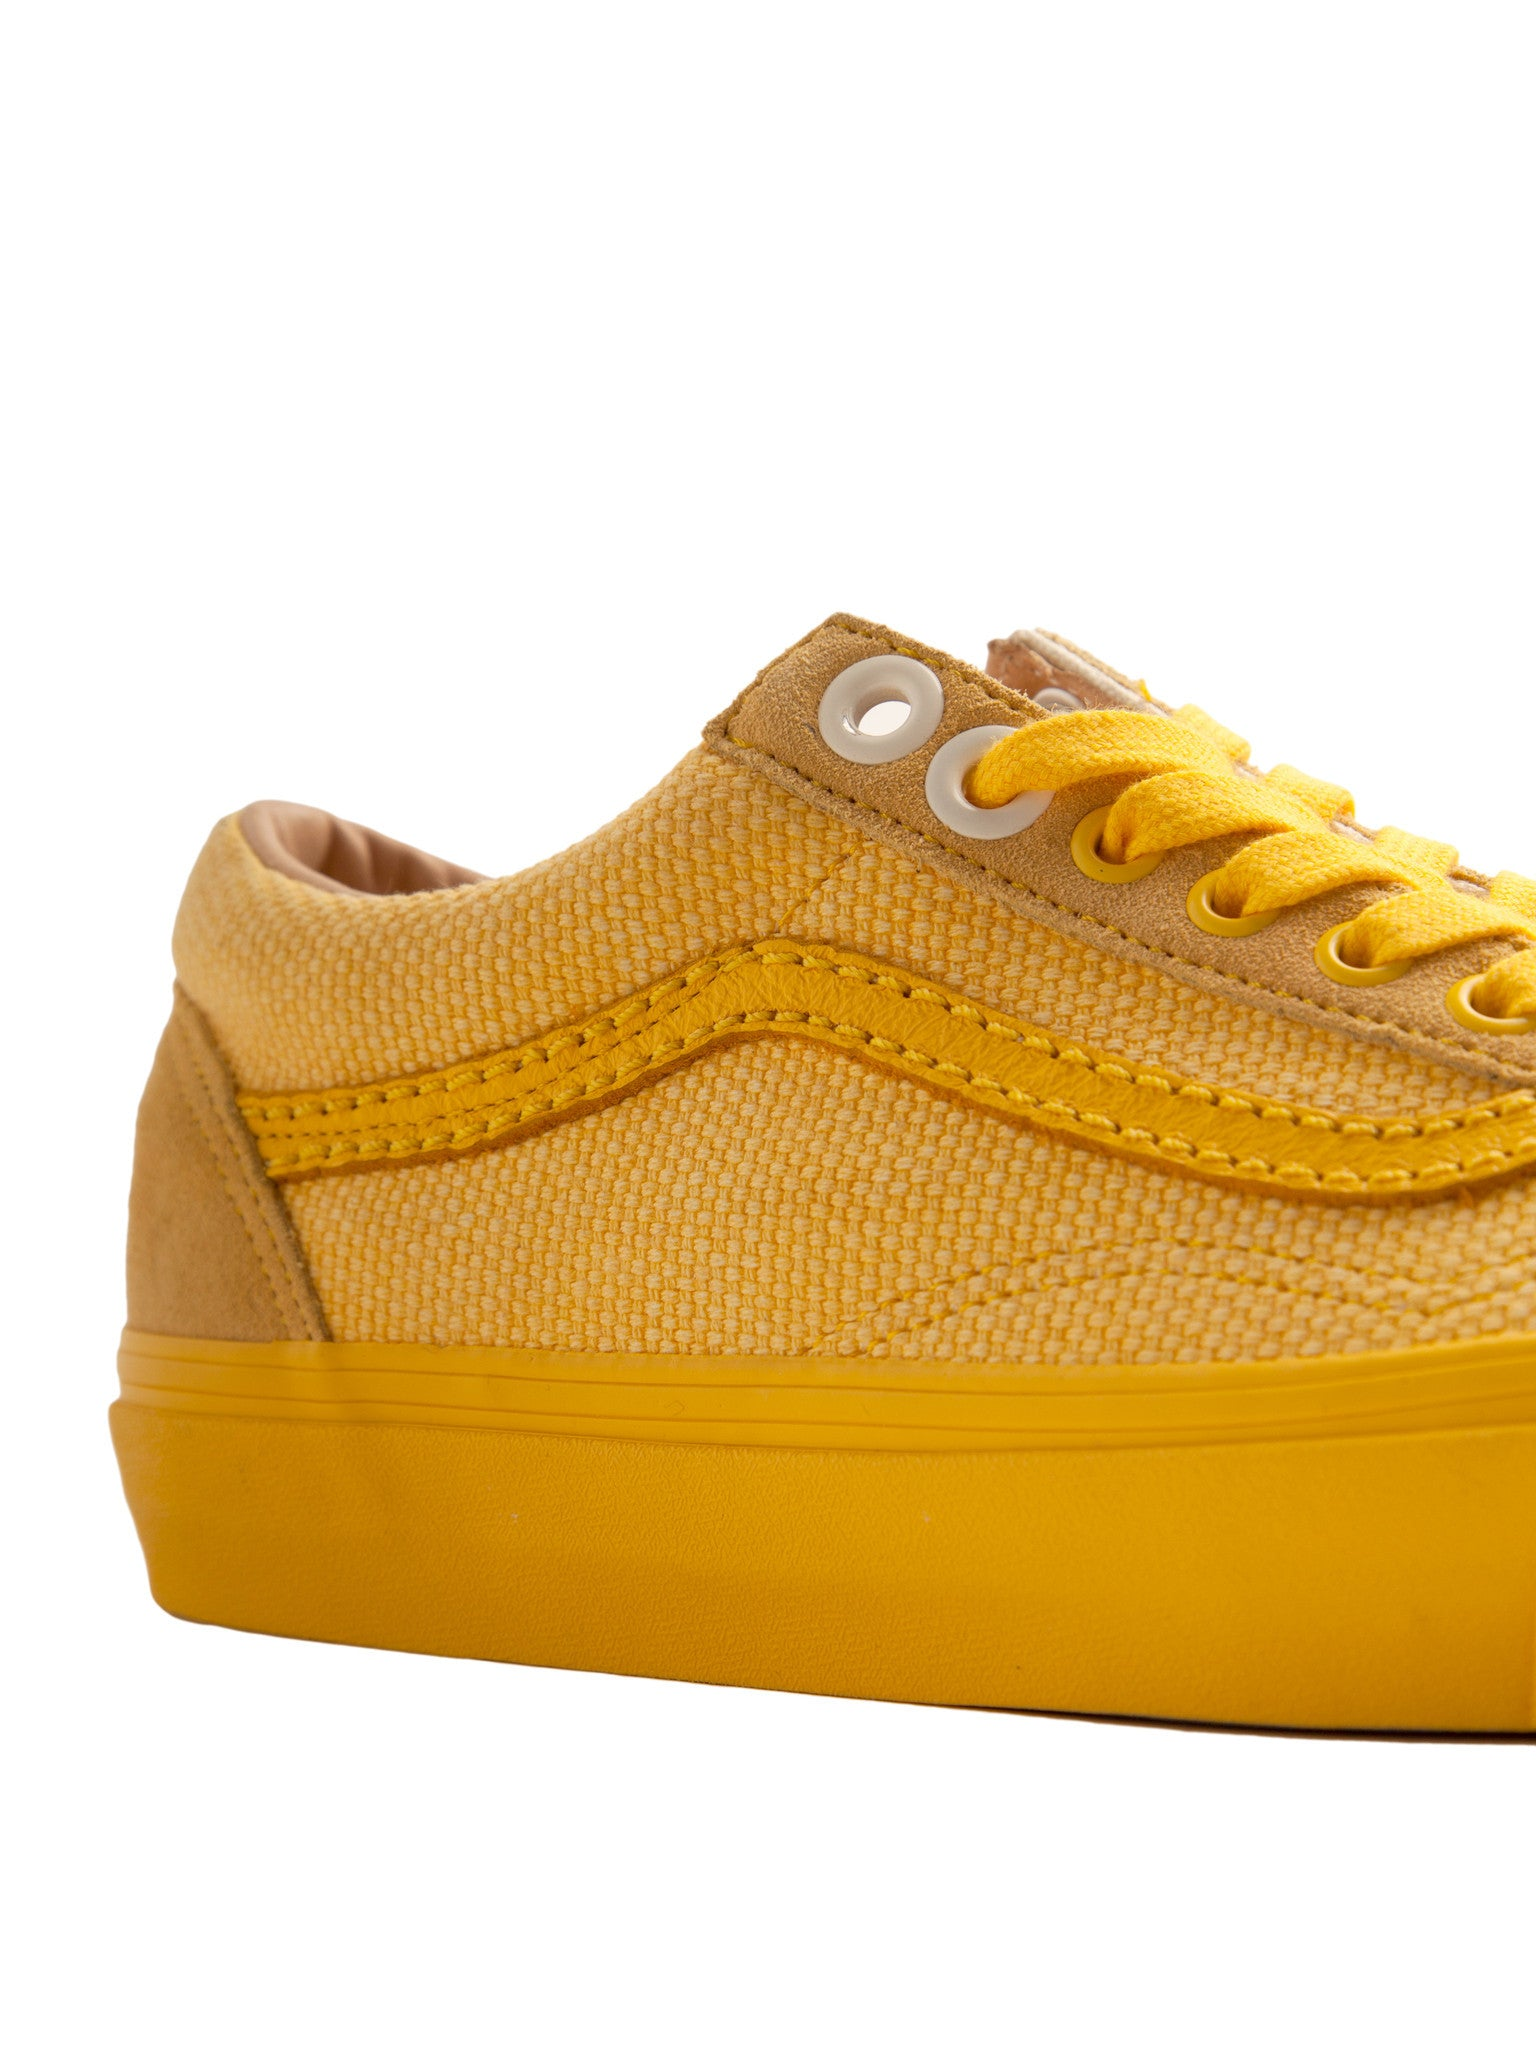 Citrus Vans Vault Old Skool (UNION) - Citrus 2